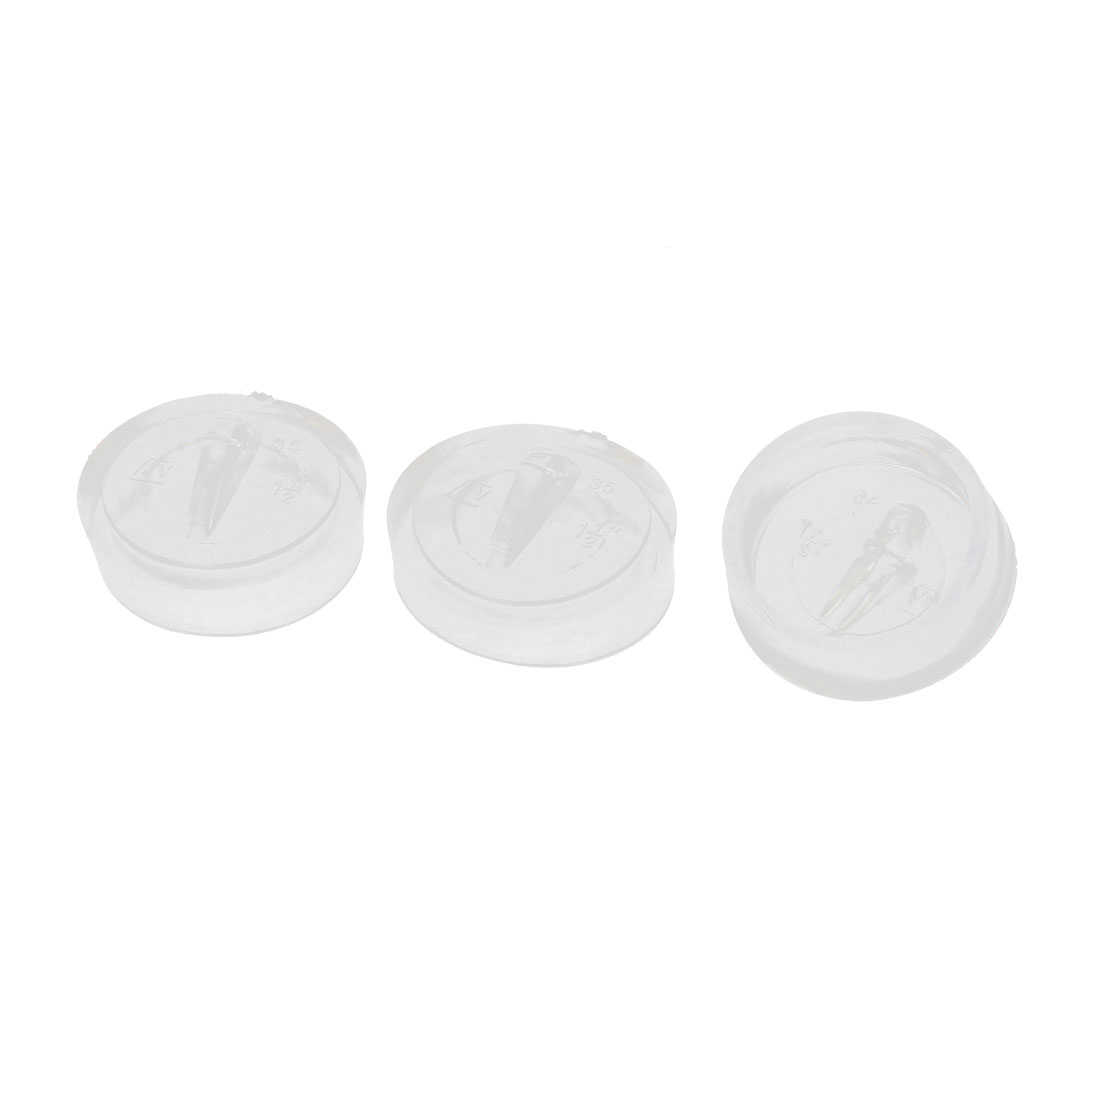 Kitchen Water Sink Basin Rubber Plug Garbage Disposal Stopper Clear 3 Pcs